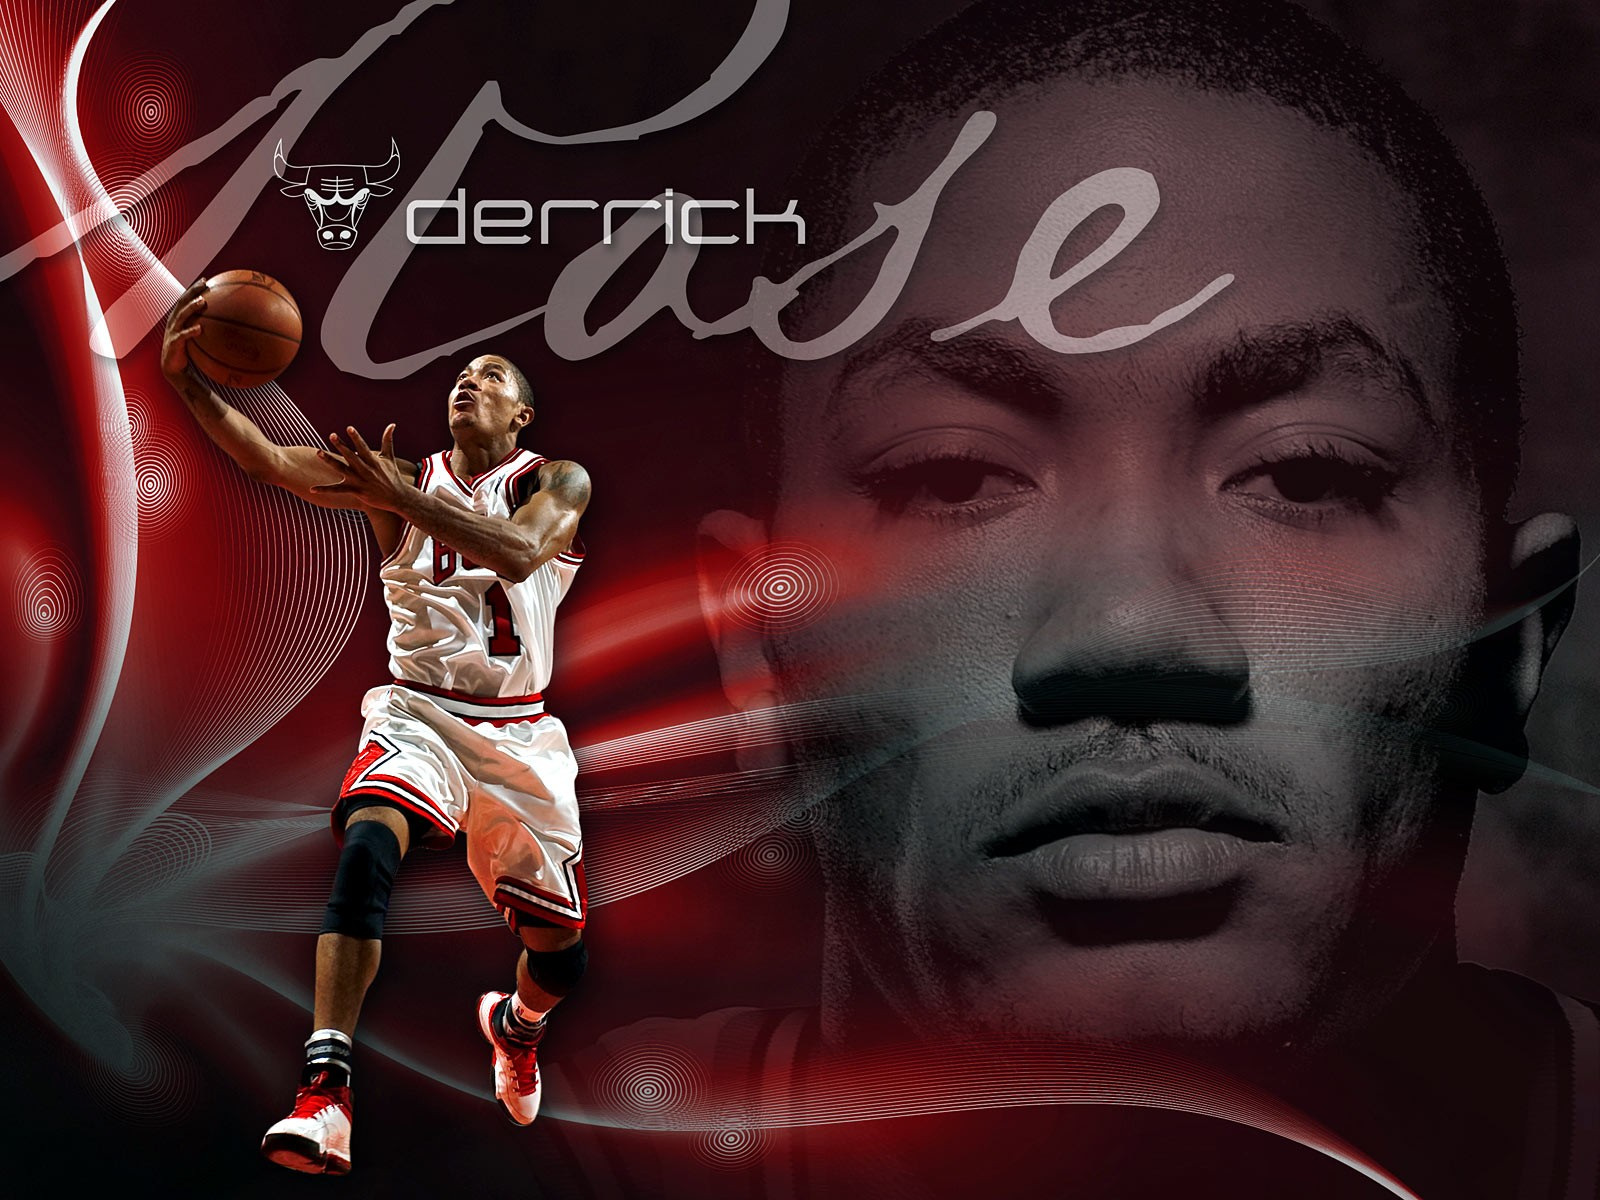 Derrick rose hd wallpapers latest hd wallpapers for Latest wallpaper your home